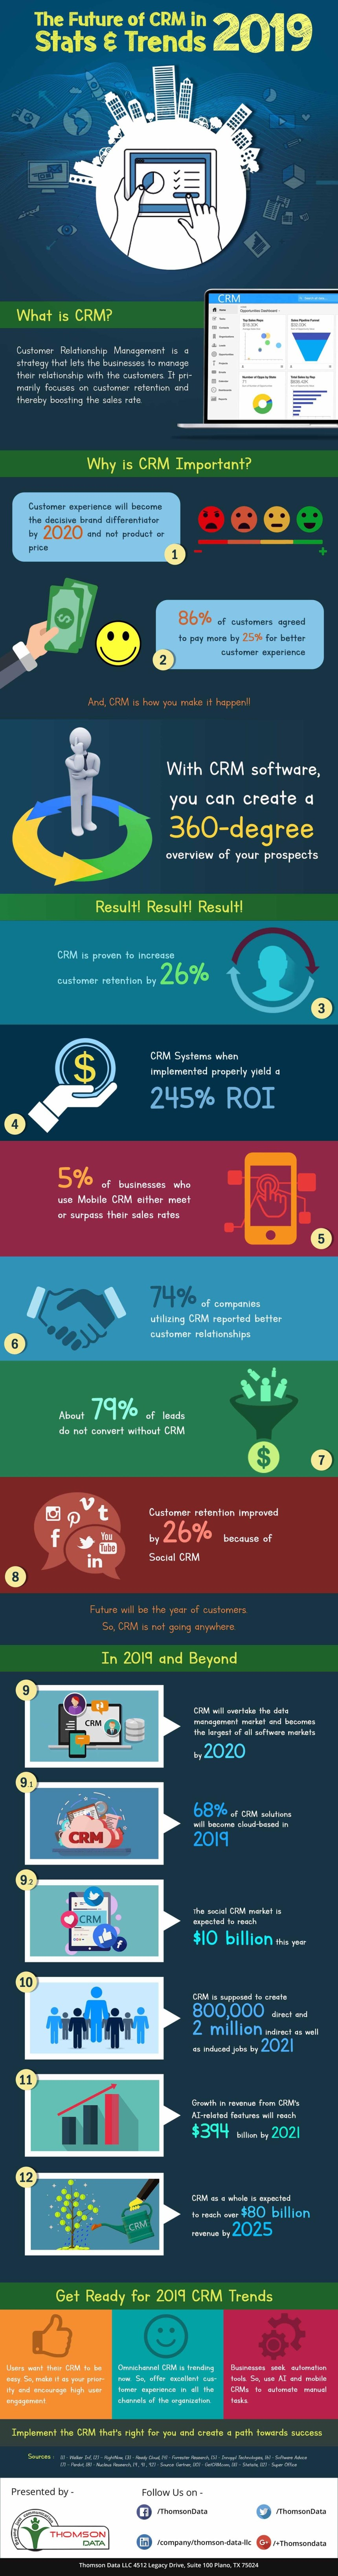 Estadísticas y tendencias sobre los CRM #infografia #infographic #marketing